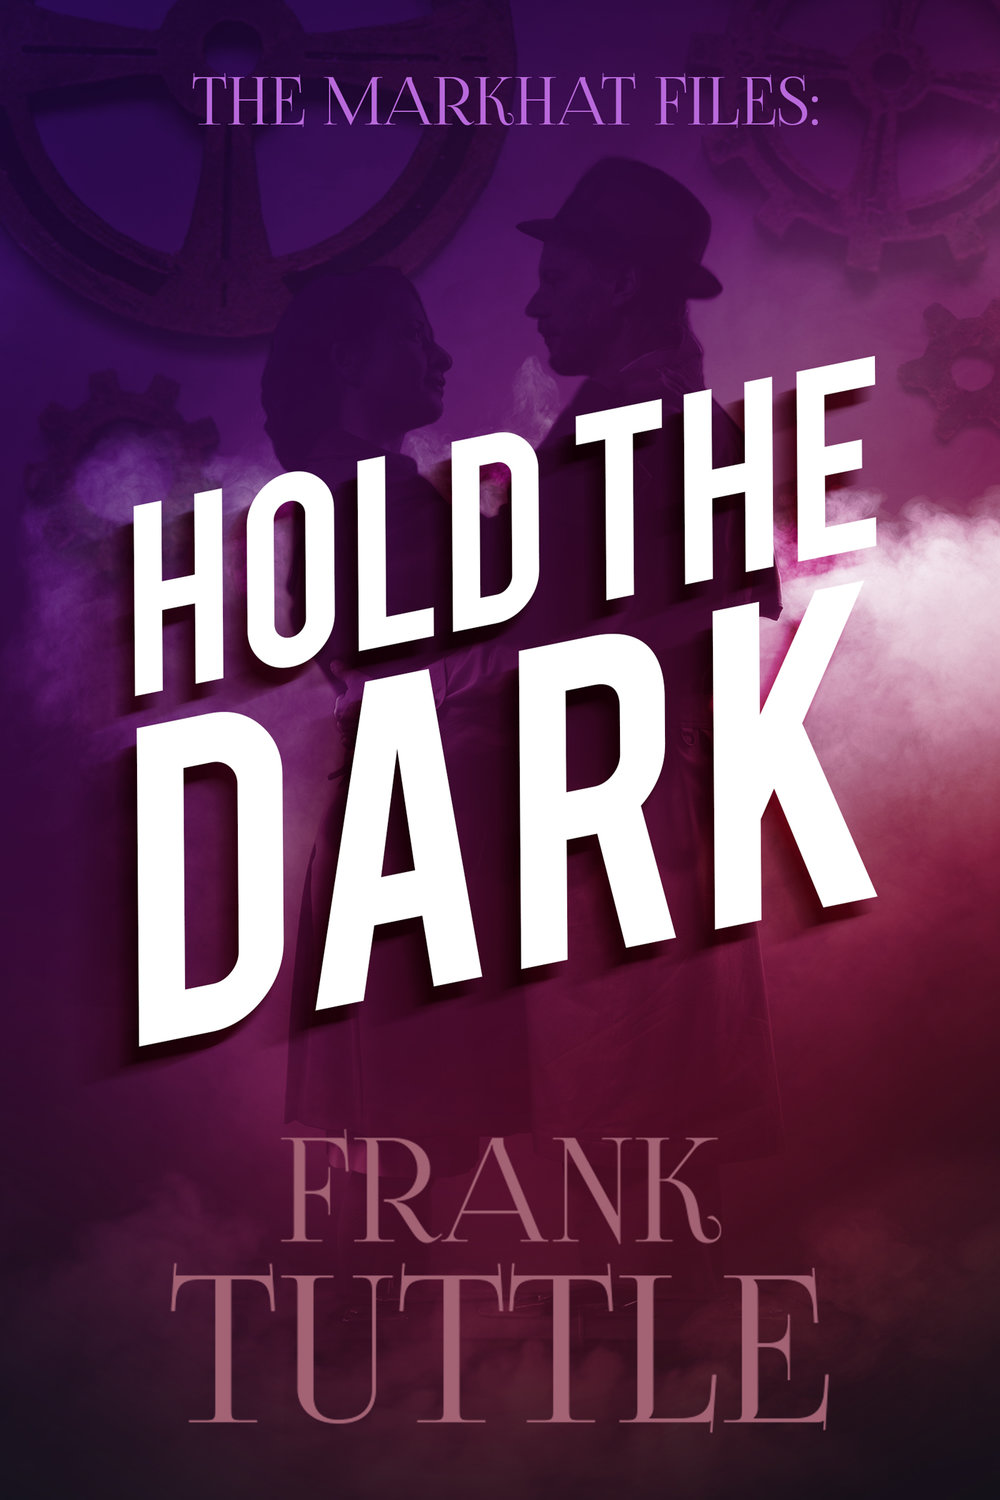 [FT-2017-002]-FT-Hold-the-Dark-E-Book-Cover_1400x2100.jpg